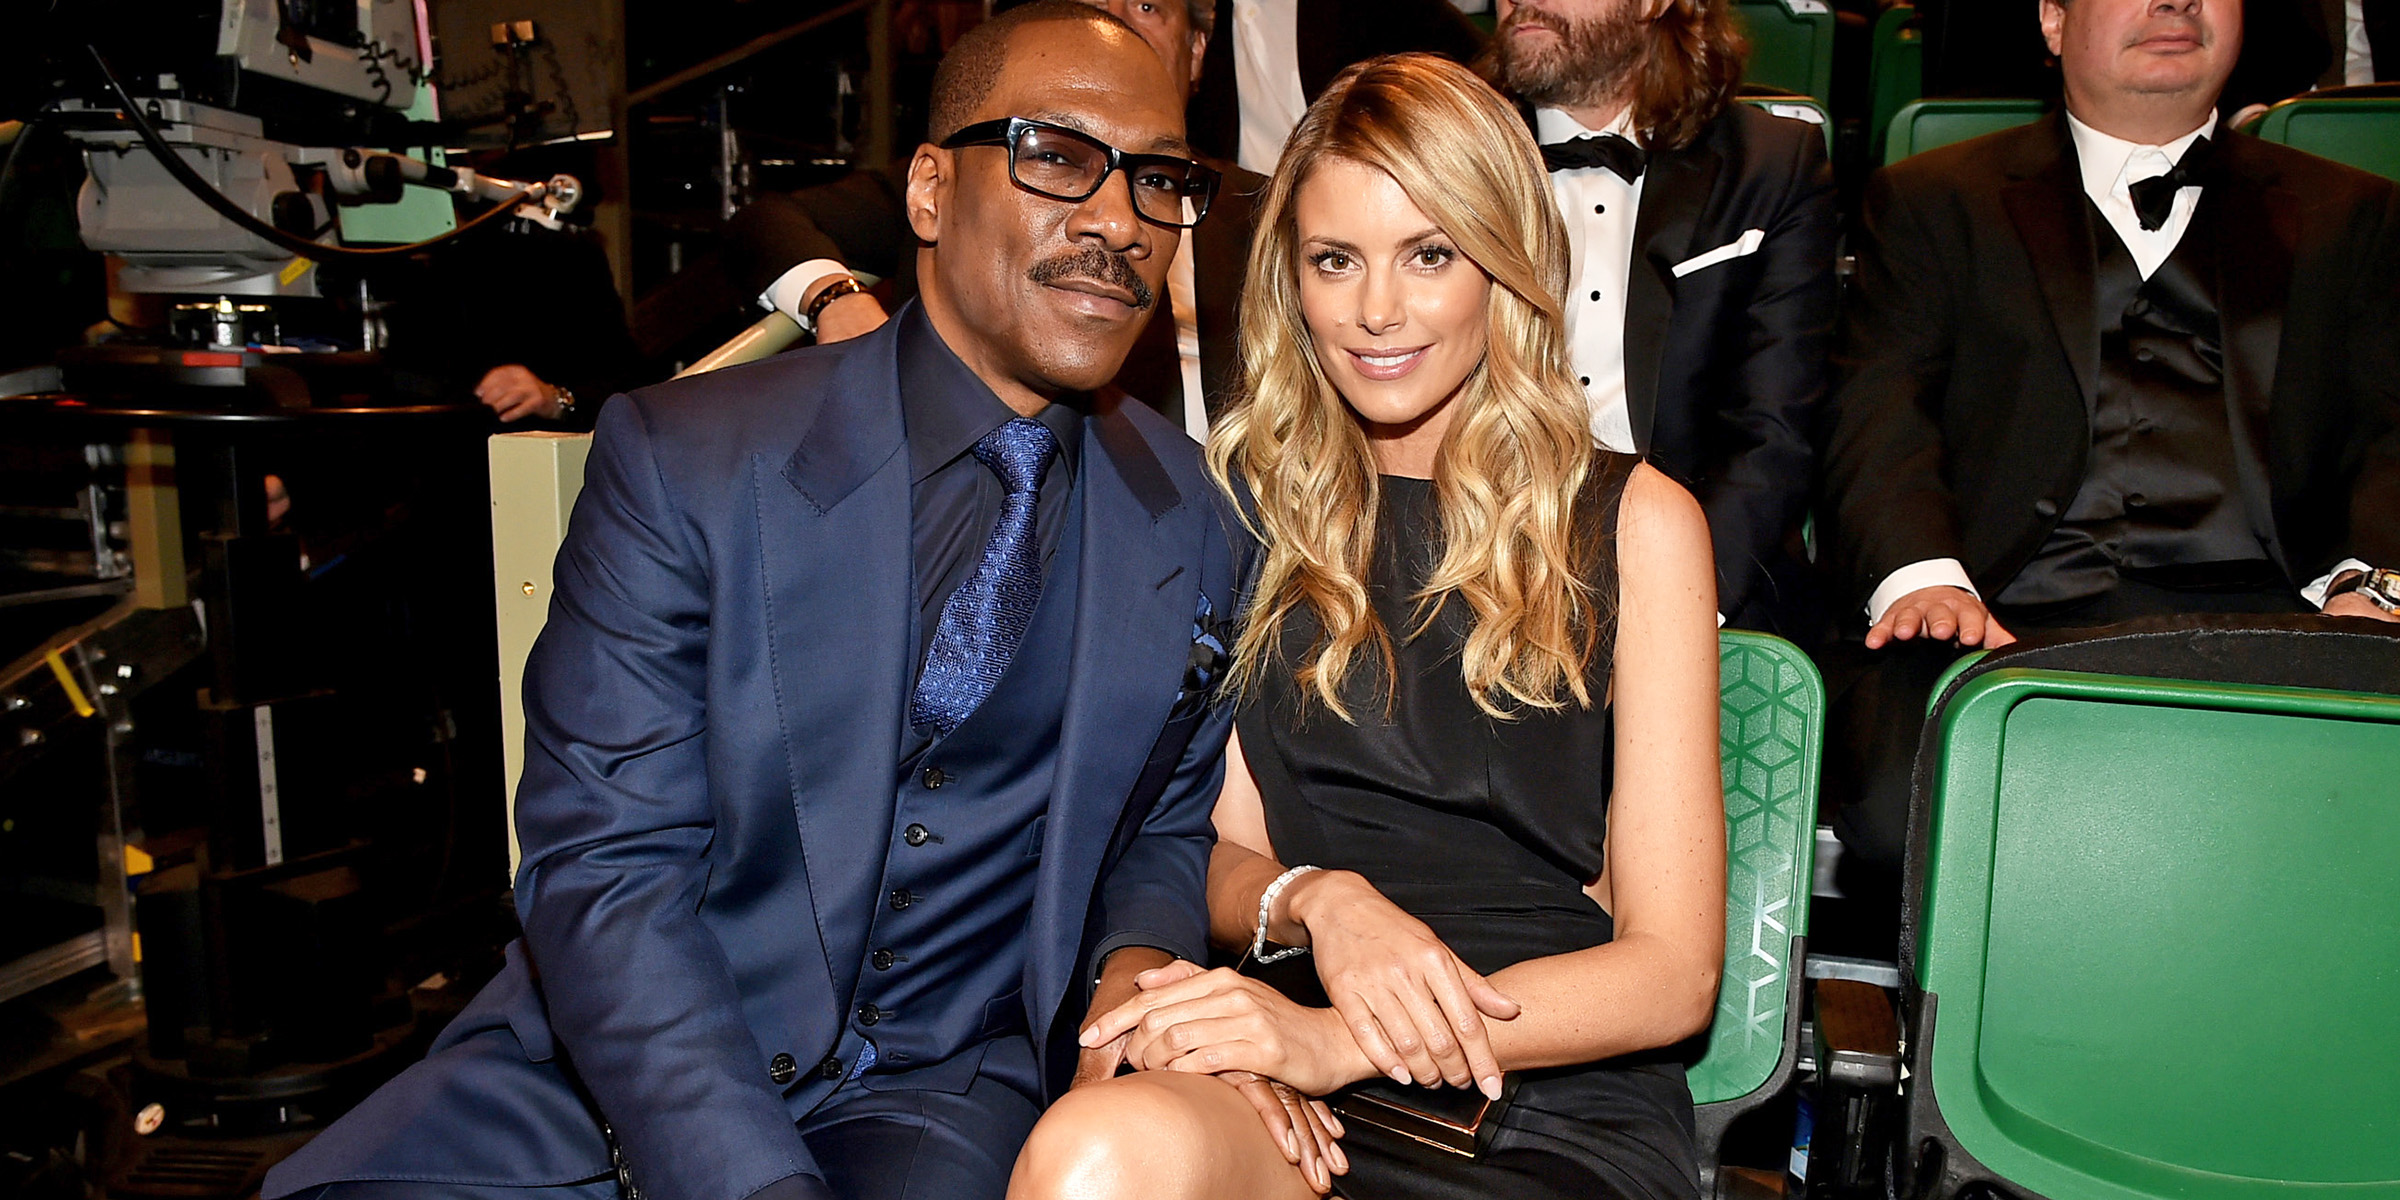 Eddie Murphy Welcomes 10th Kid Other Celebs With A Gang Of Babies Hiphollywood Eddie murphy has been at this fatherhood thing now. https www hiphollywood com 2018 12 eddie murphy welcomes 10th kid more celebs with a plethora of babies